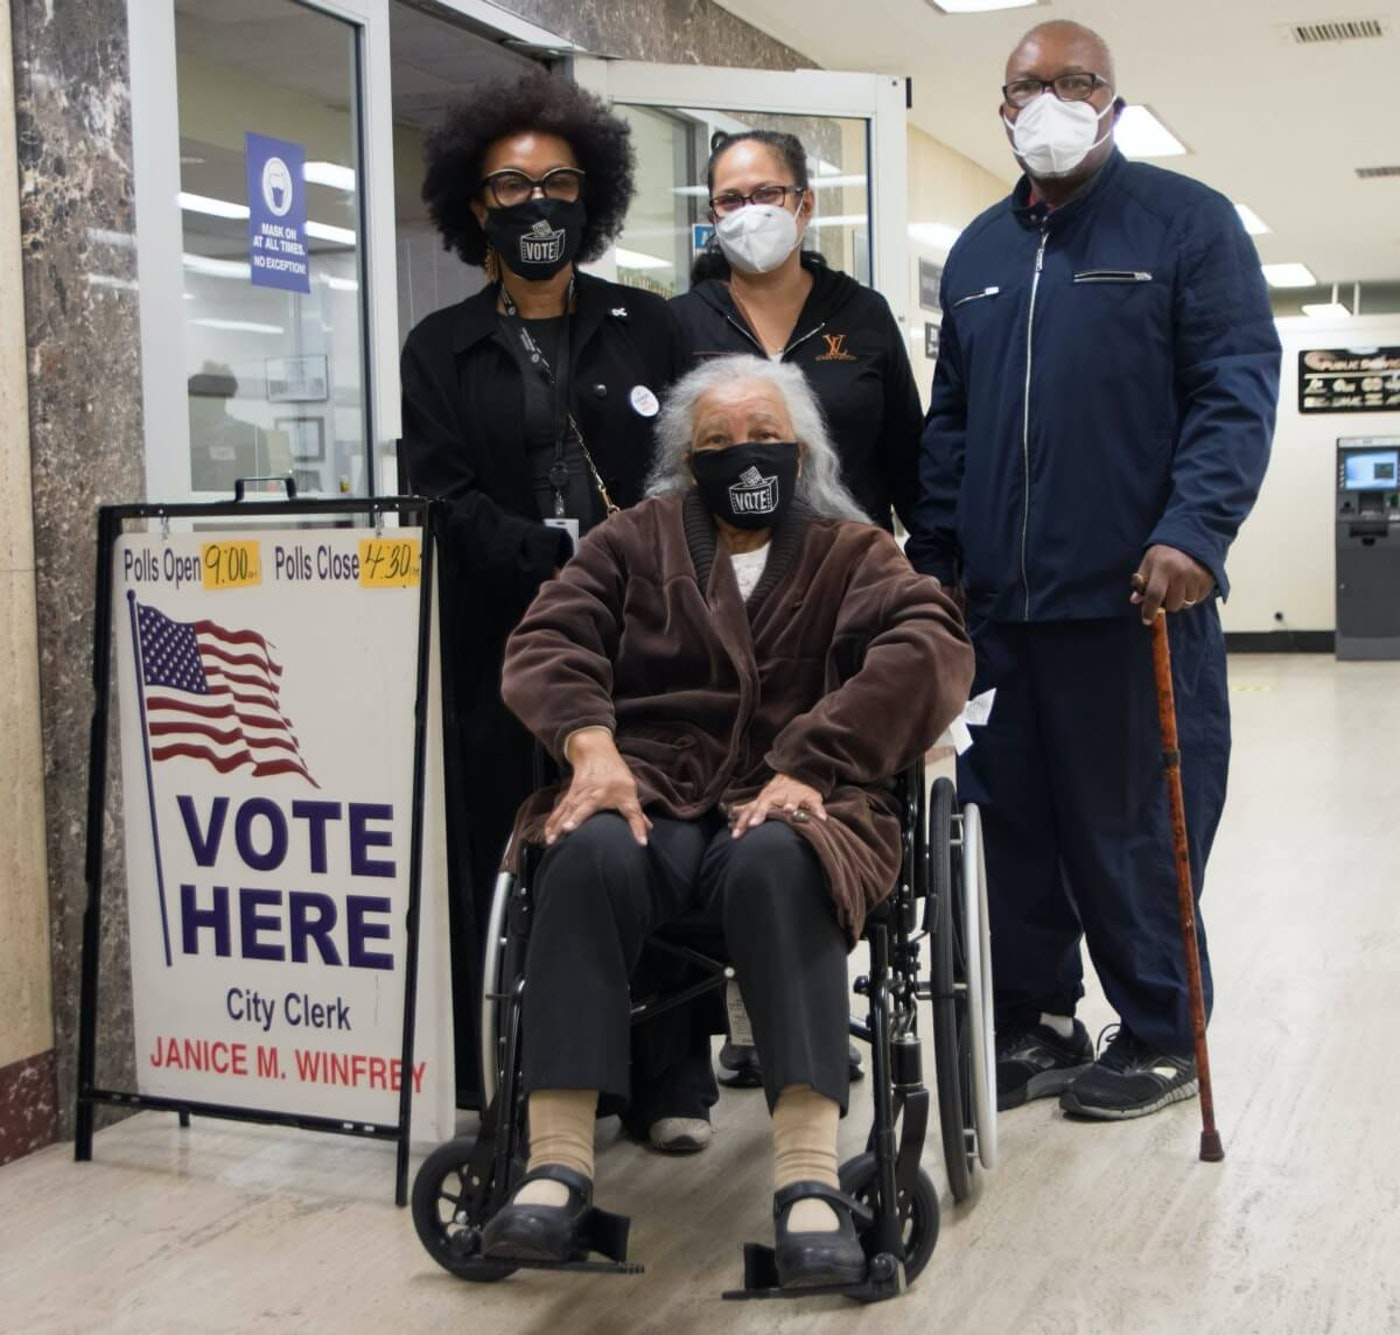 Mildred Madison left Michigan to care for her sister. Now, her family has returned the favor by helping her travel 300 miles back to Detroit to cast her vote.